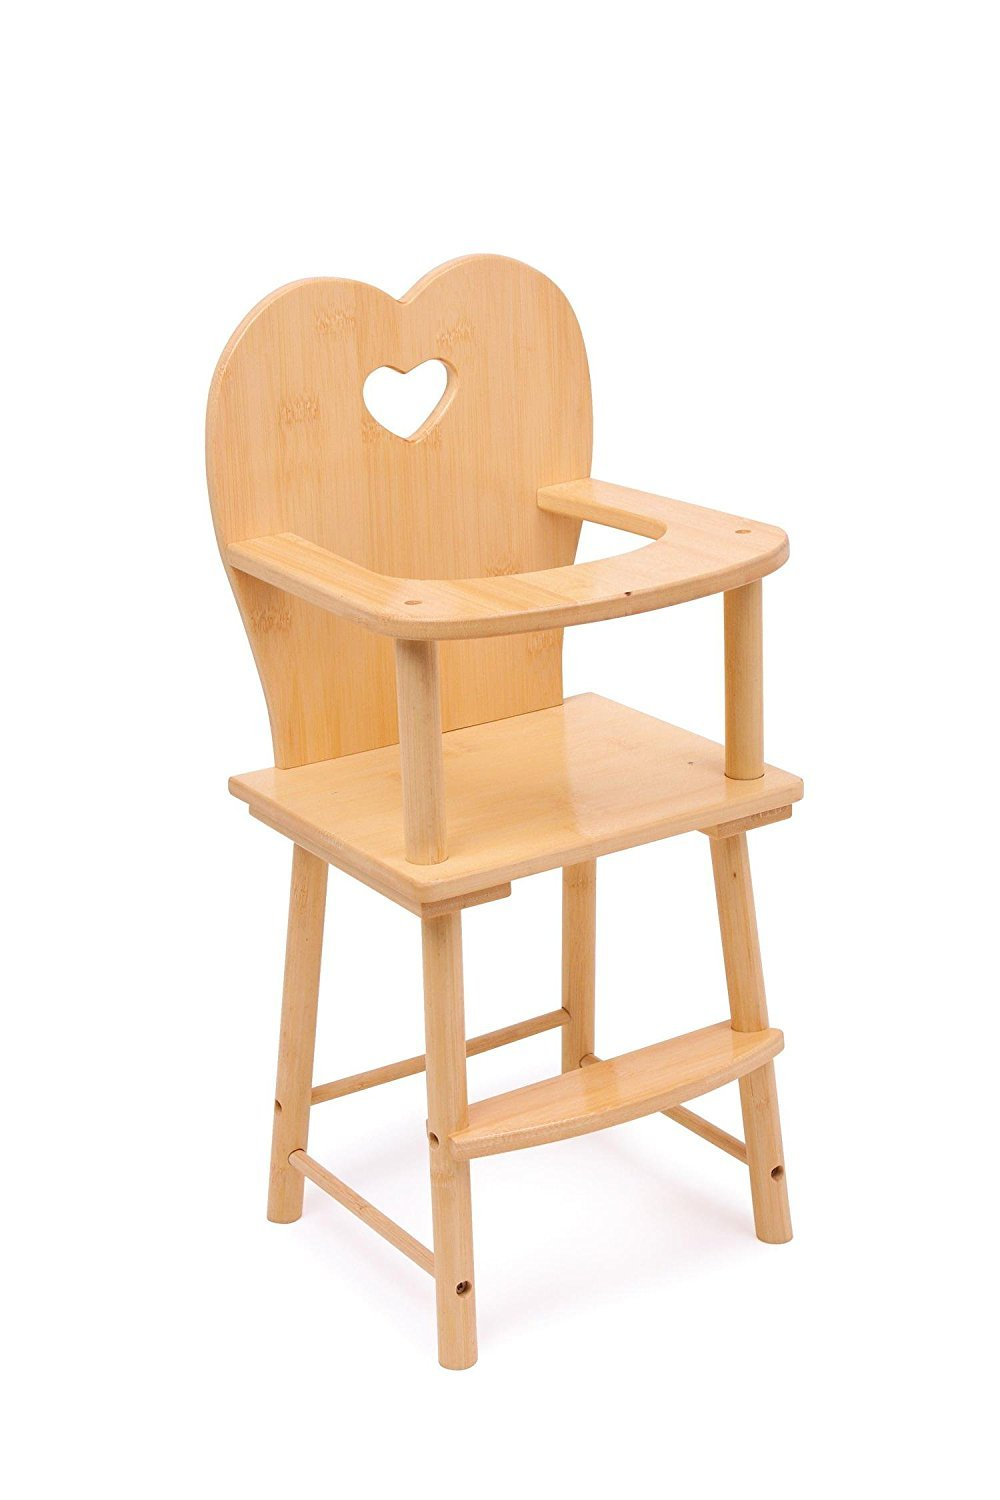 Reducción de precio Solid Wooden Dolls Feeding High Chair - Girls Toy